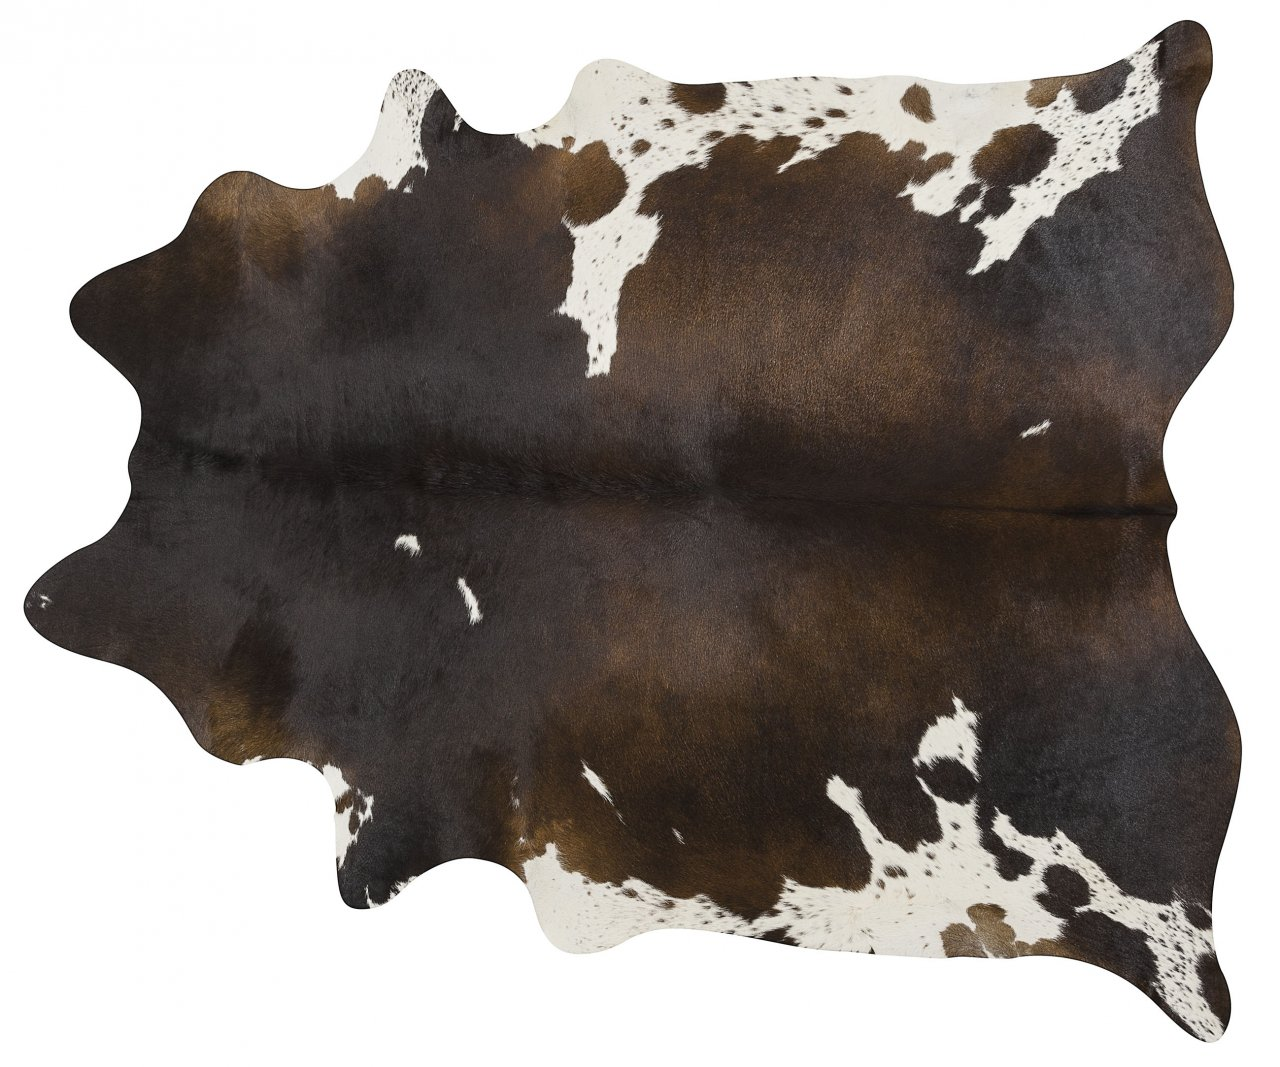 Chocolate and White Brazilian Cowhide Rug Cow Hide Area Rugs - Size XL